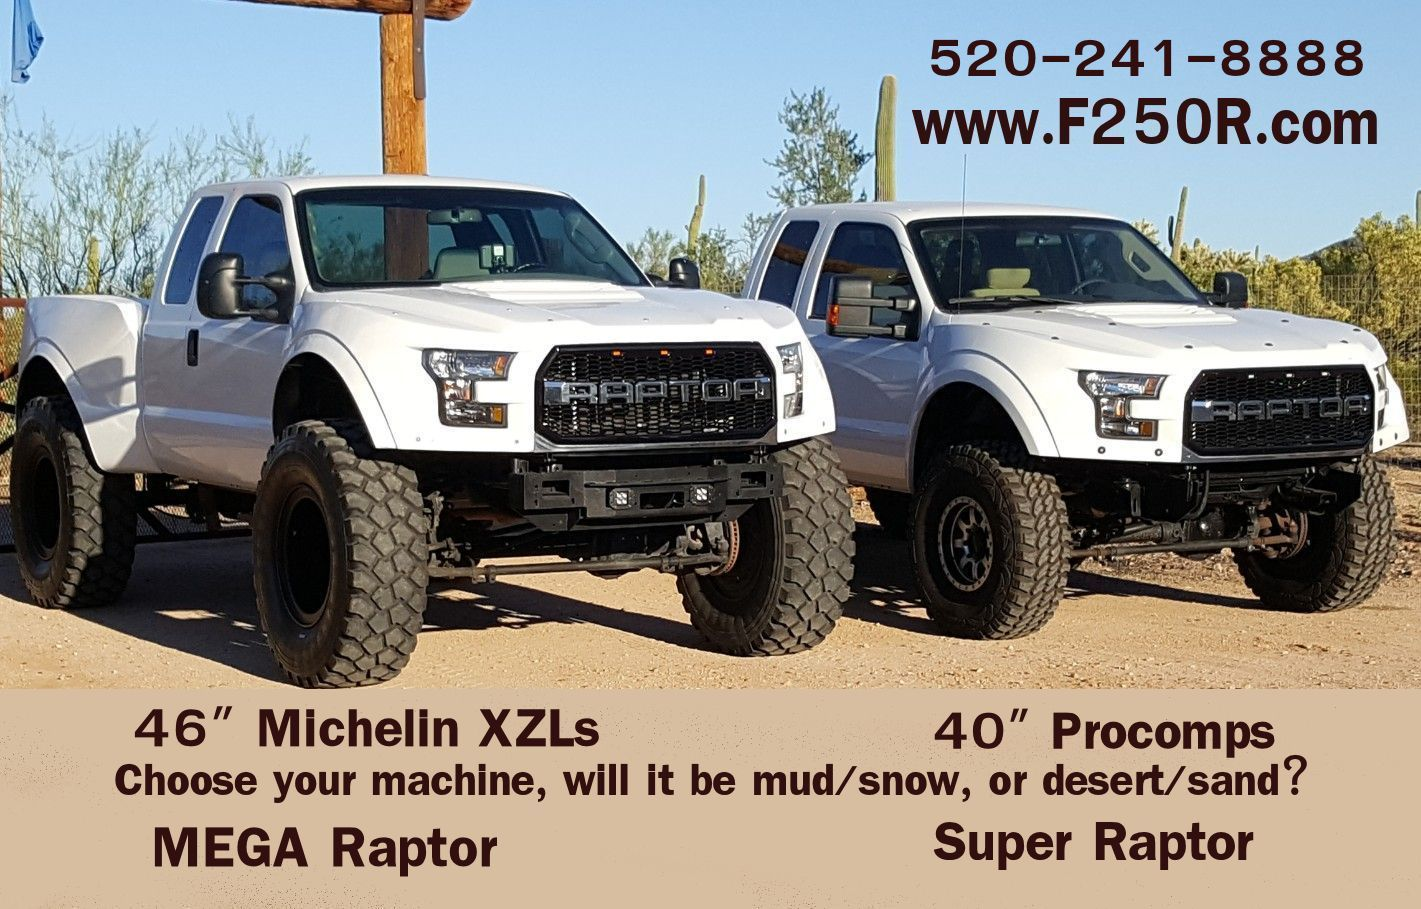 Moto Truck, F250 or New Raptor - Moto-Related - Motocross Forums ...